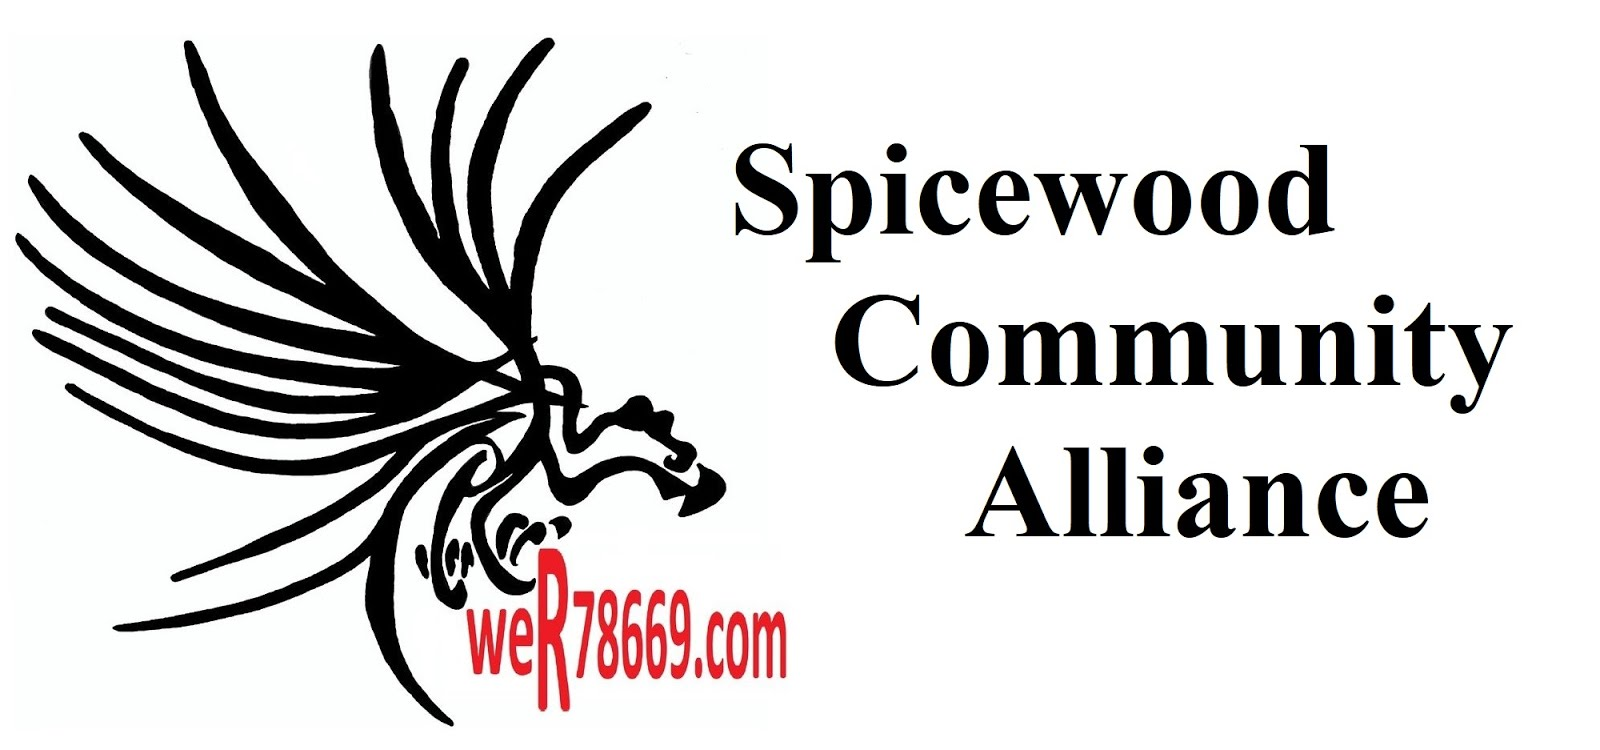 Spicewood Community Alliance